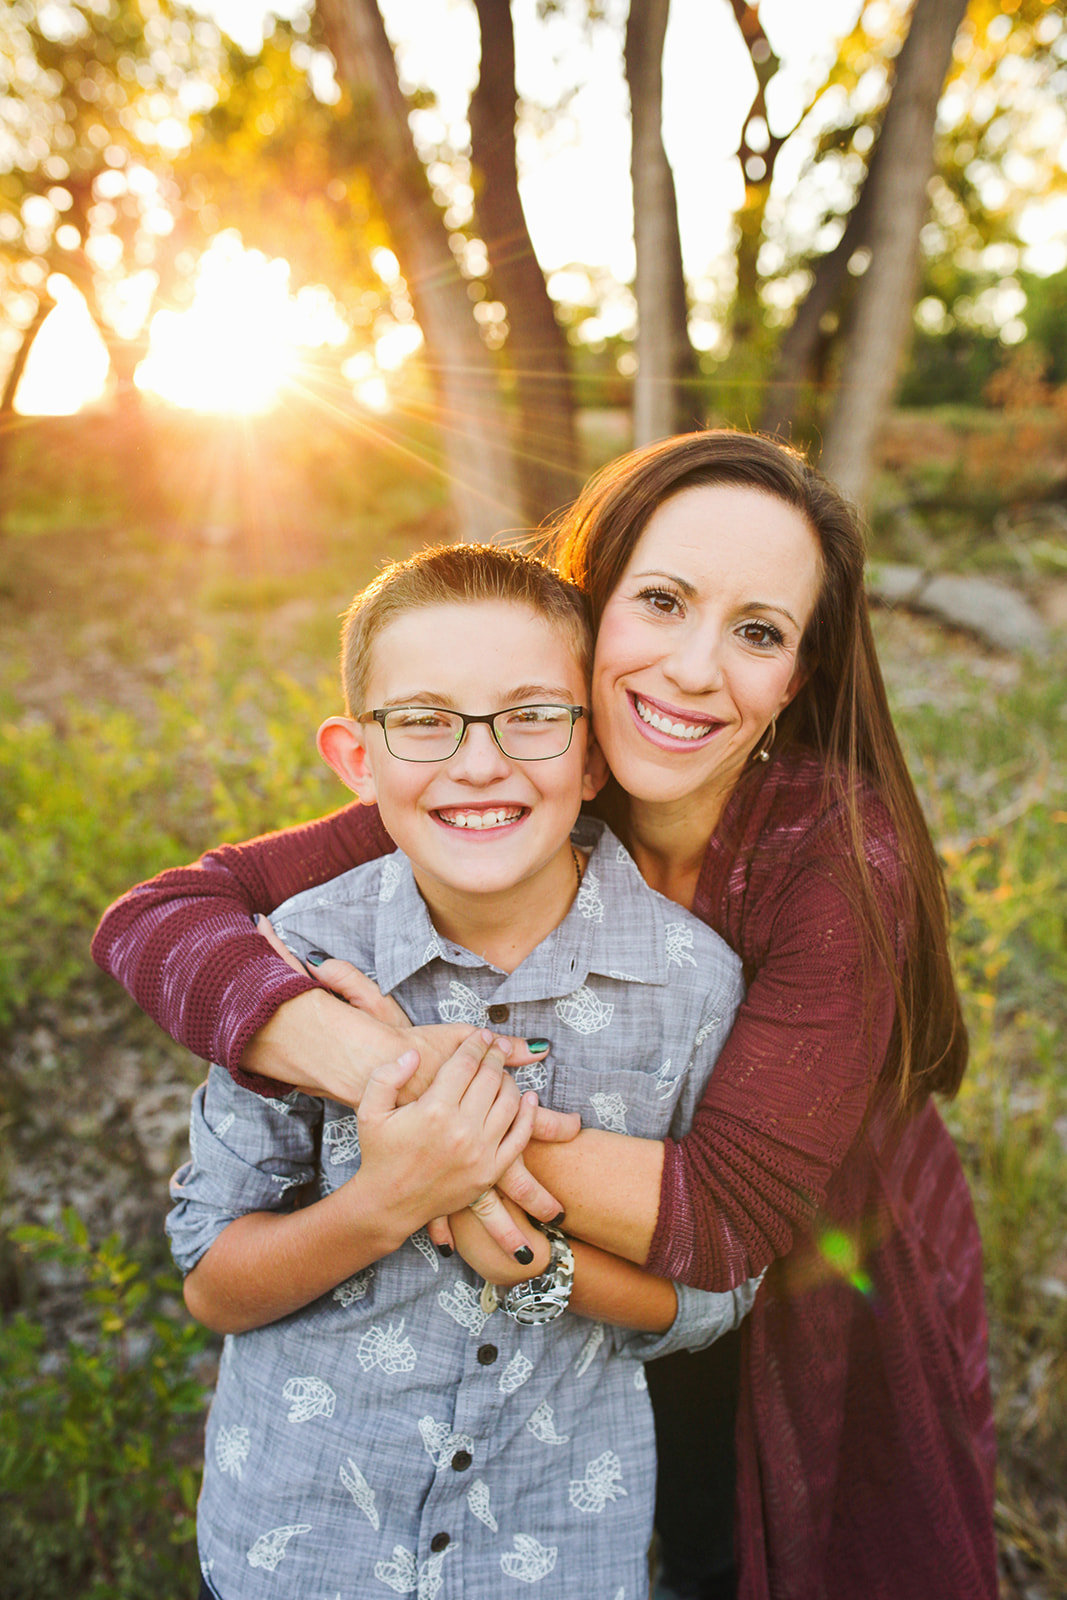 Albuquerque Family Photographer_Bosque_www.tylerbrooke.com_Kate Kauffman_028